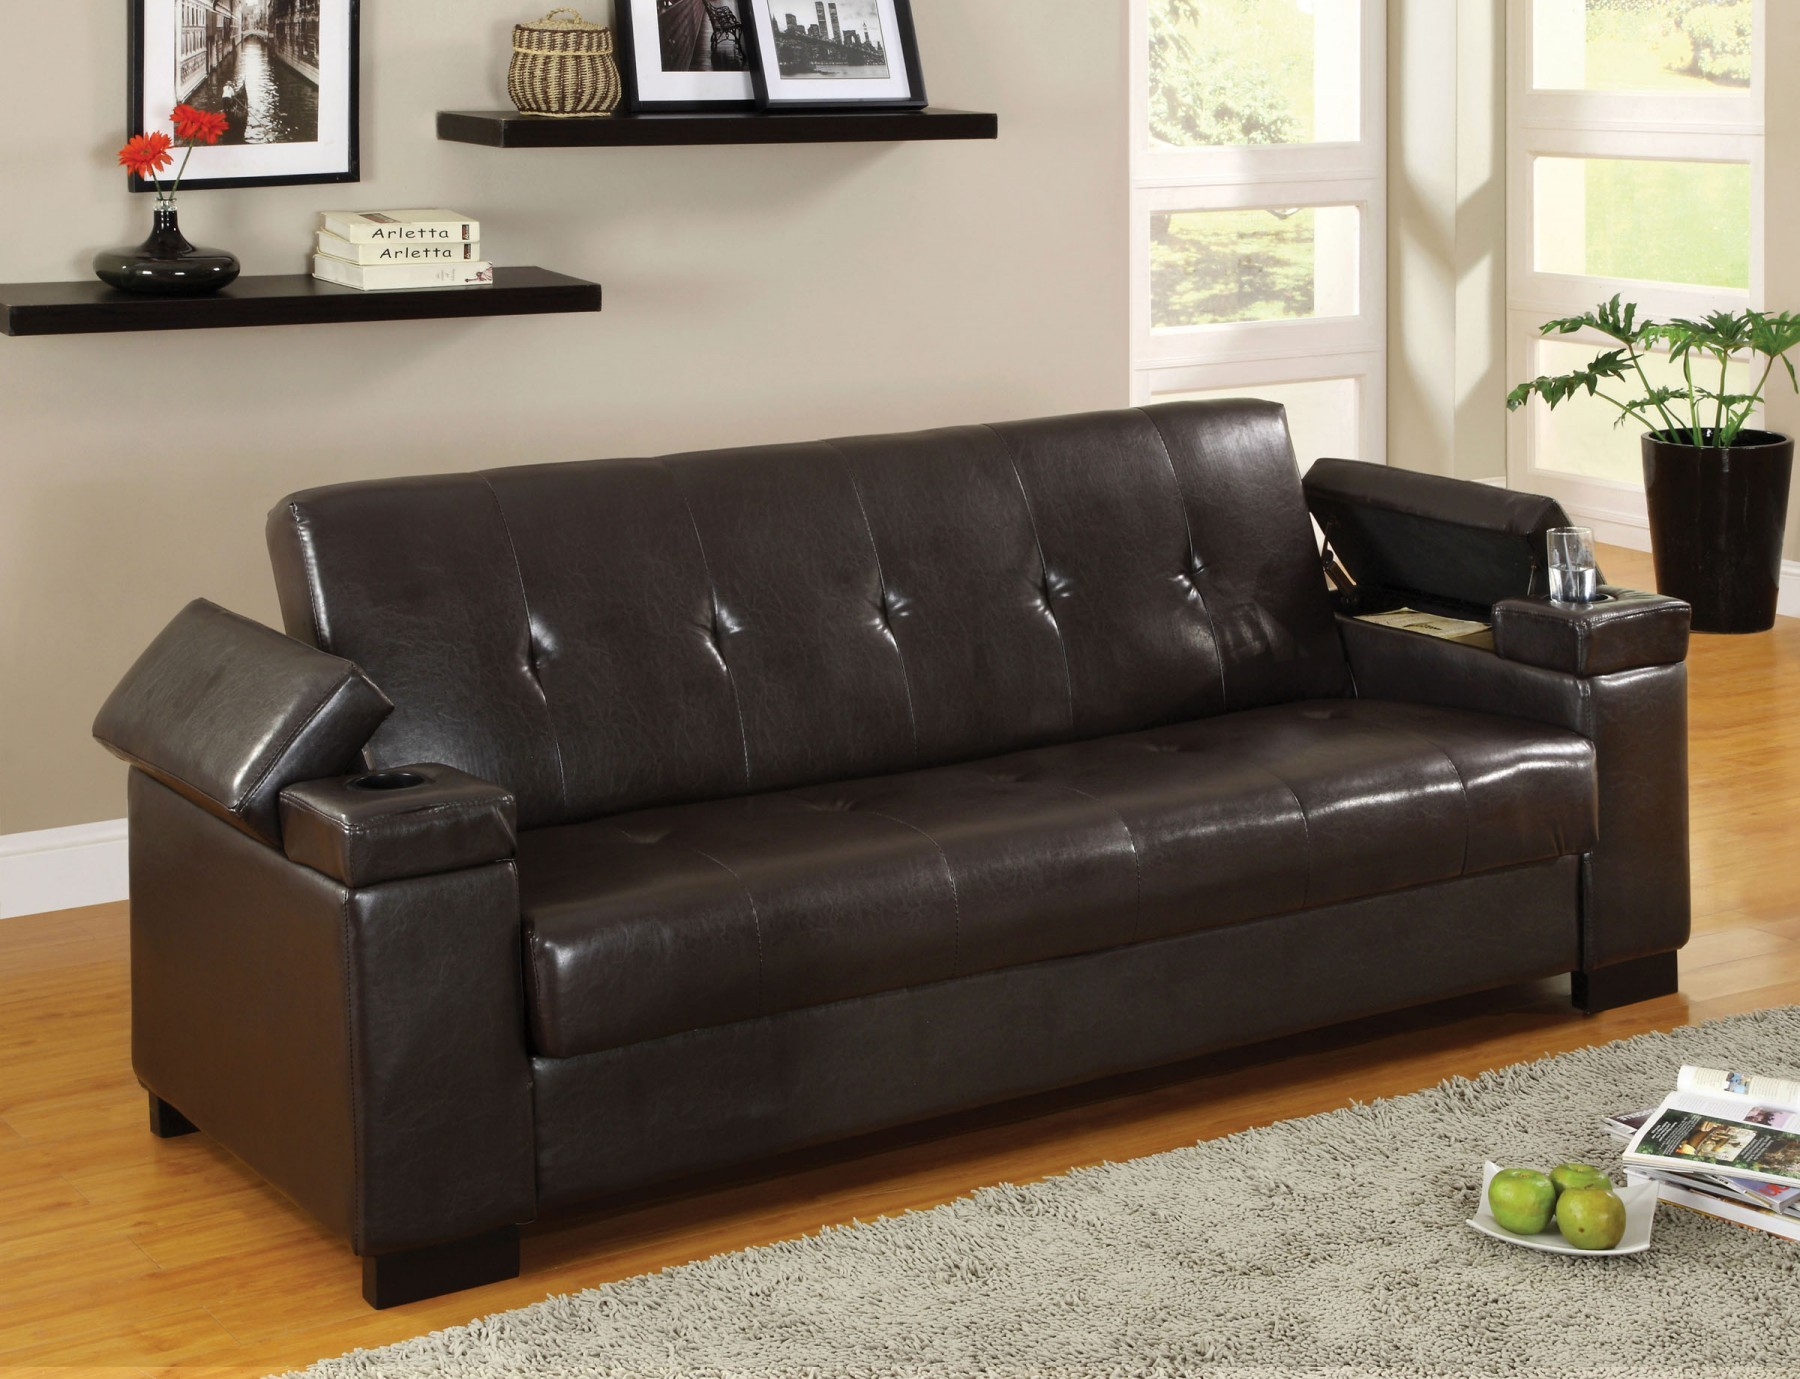 Sofa Bed With Storage Cup Holder